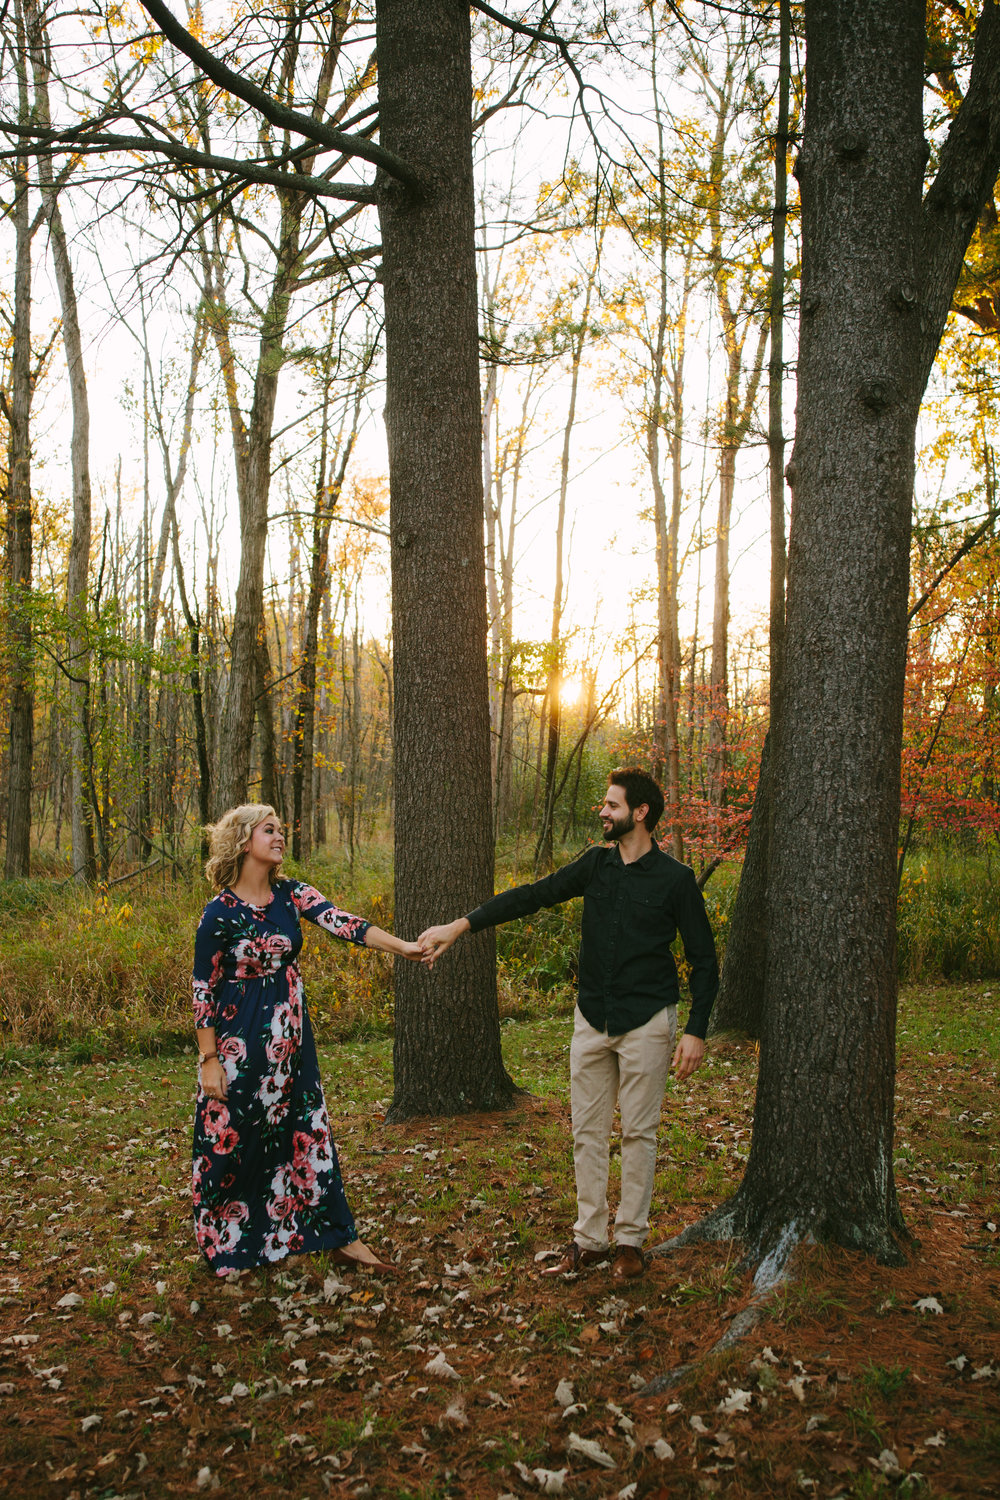 charltonpark_engagementsession_grandrapidsphotographer_grandrapids_hastings_michiganwedding_fallengagement_fallwedding_jdarlingphoto_jessicadarling_westmichiganphotographer_wedding_fall_rusticwedding  027.jpg